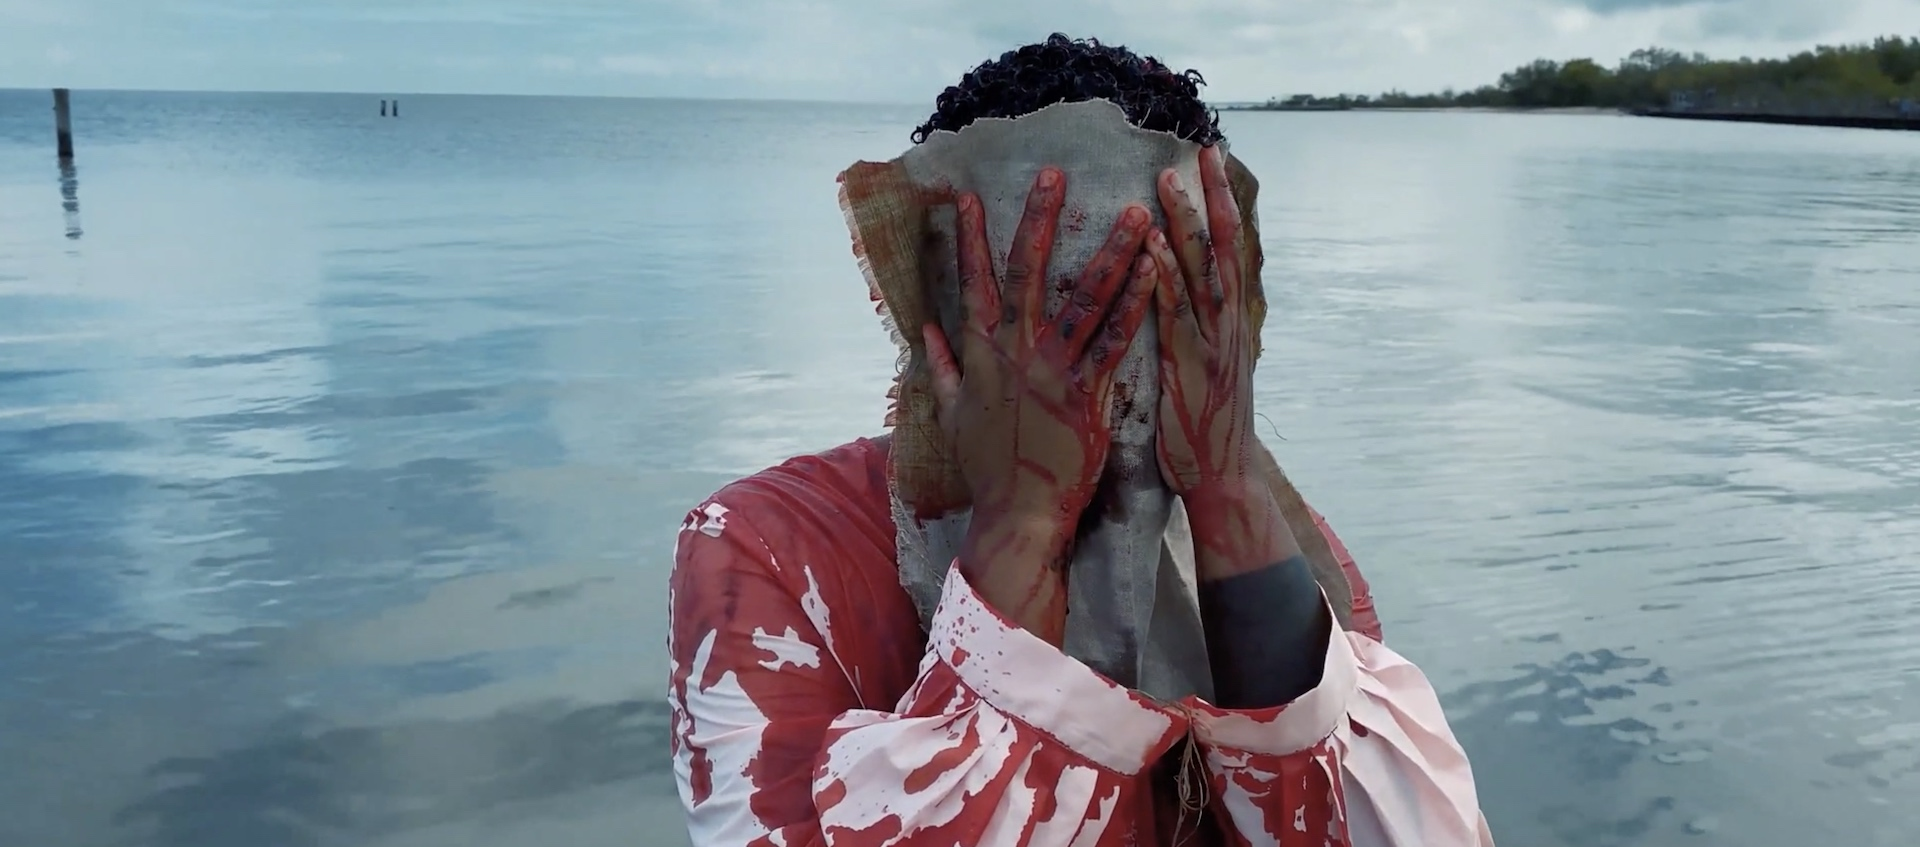 A black trans woman standing in Lake Pontchartain in a white tunic covered in blood uses a towel to wipe blood from their face